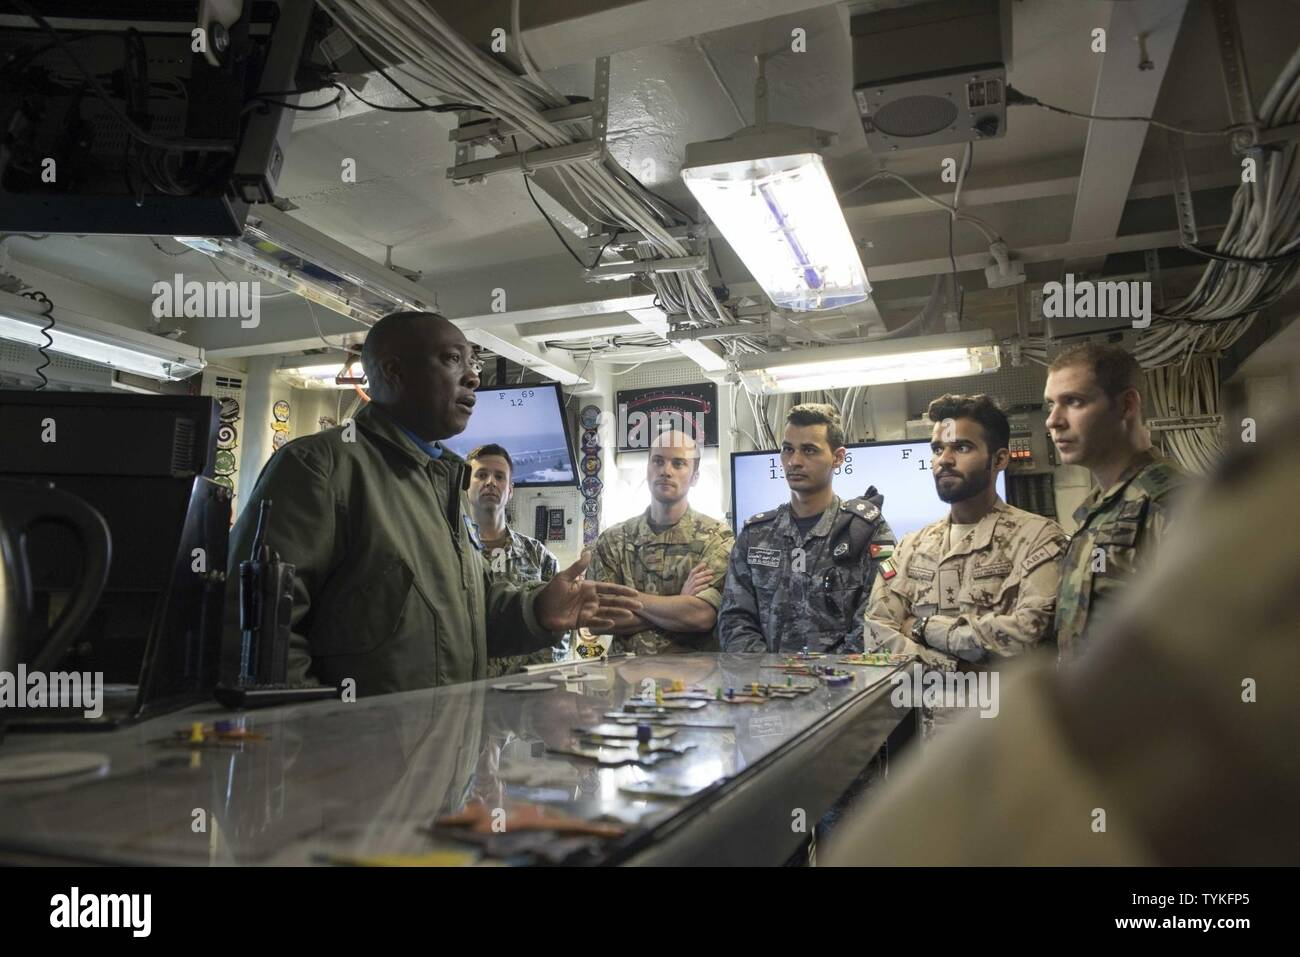 GULF (Nov. 14, 2016) Lt. Cmdr. Patrick Batiste, left, USS Dwight D. Eisenhower's (CVN 69) flight deck handling officer, speaks with staff members from Combined Task Force (CTF) 152 in the flight deck control room of the aircraft carrier during a theater security cooperation embark. The ship and its Carrier Strike Group are deployed in support of Operation Inherent Resolve, maritime security operations and theater security cooperation efforts in the U.S. 5th Fleet area of operations. - Stock Image